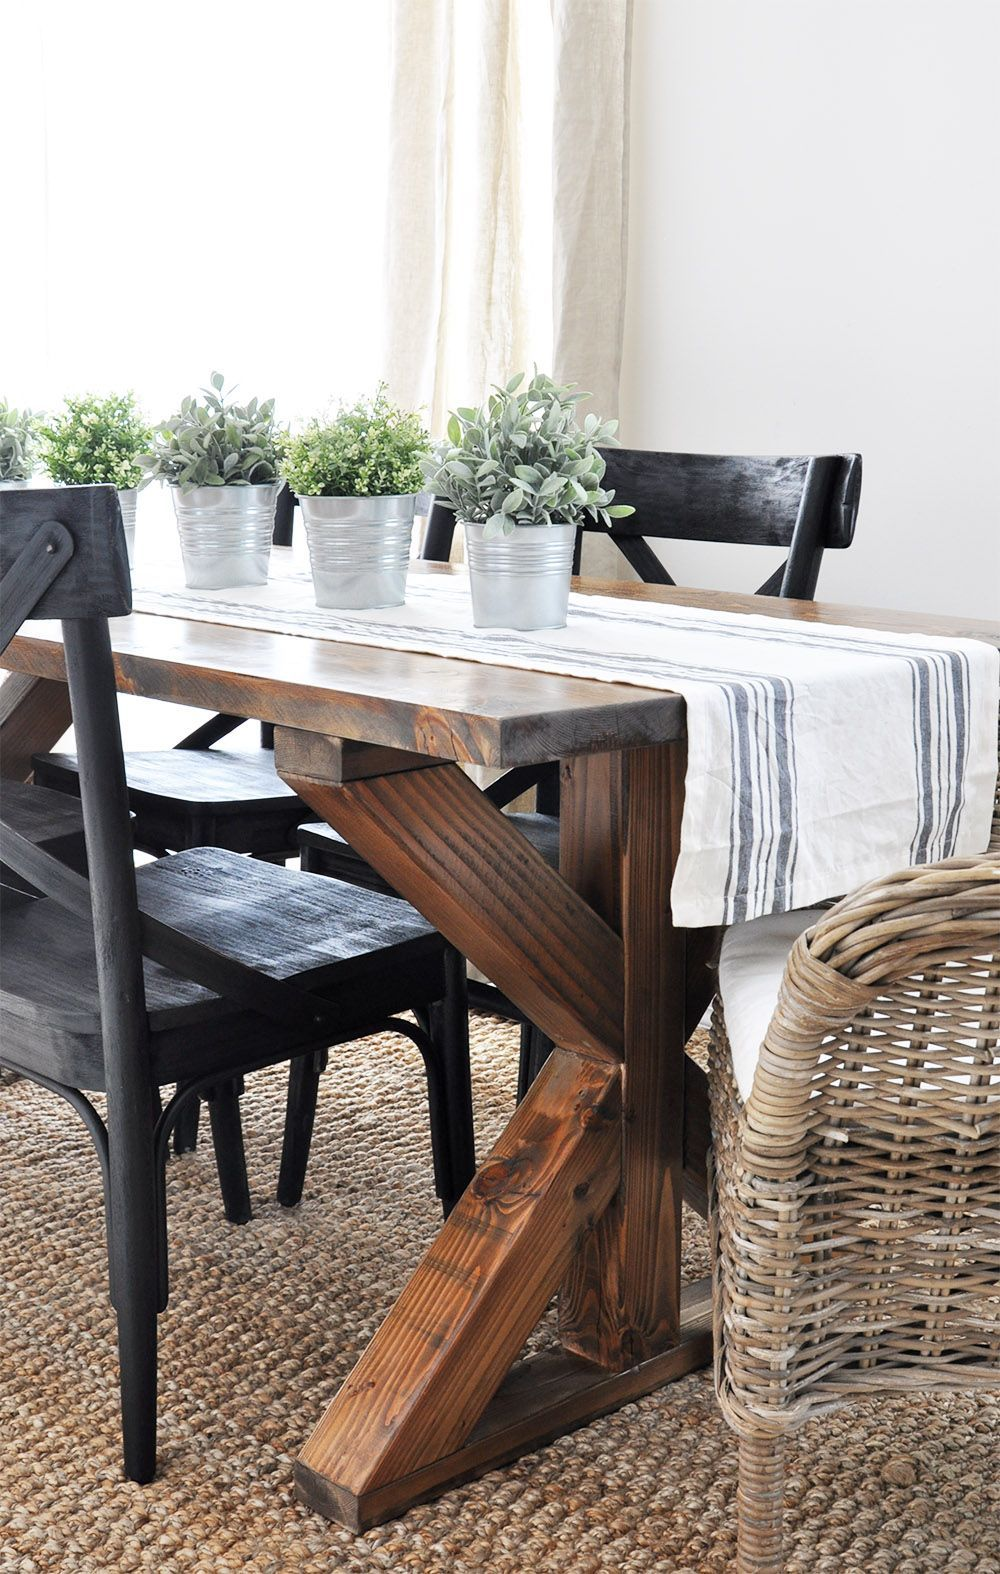 Find More About Farmhouse Dining Style Joanna Gaines French Country Small Room